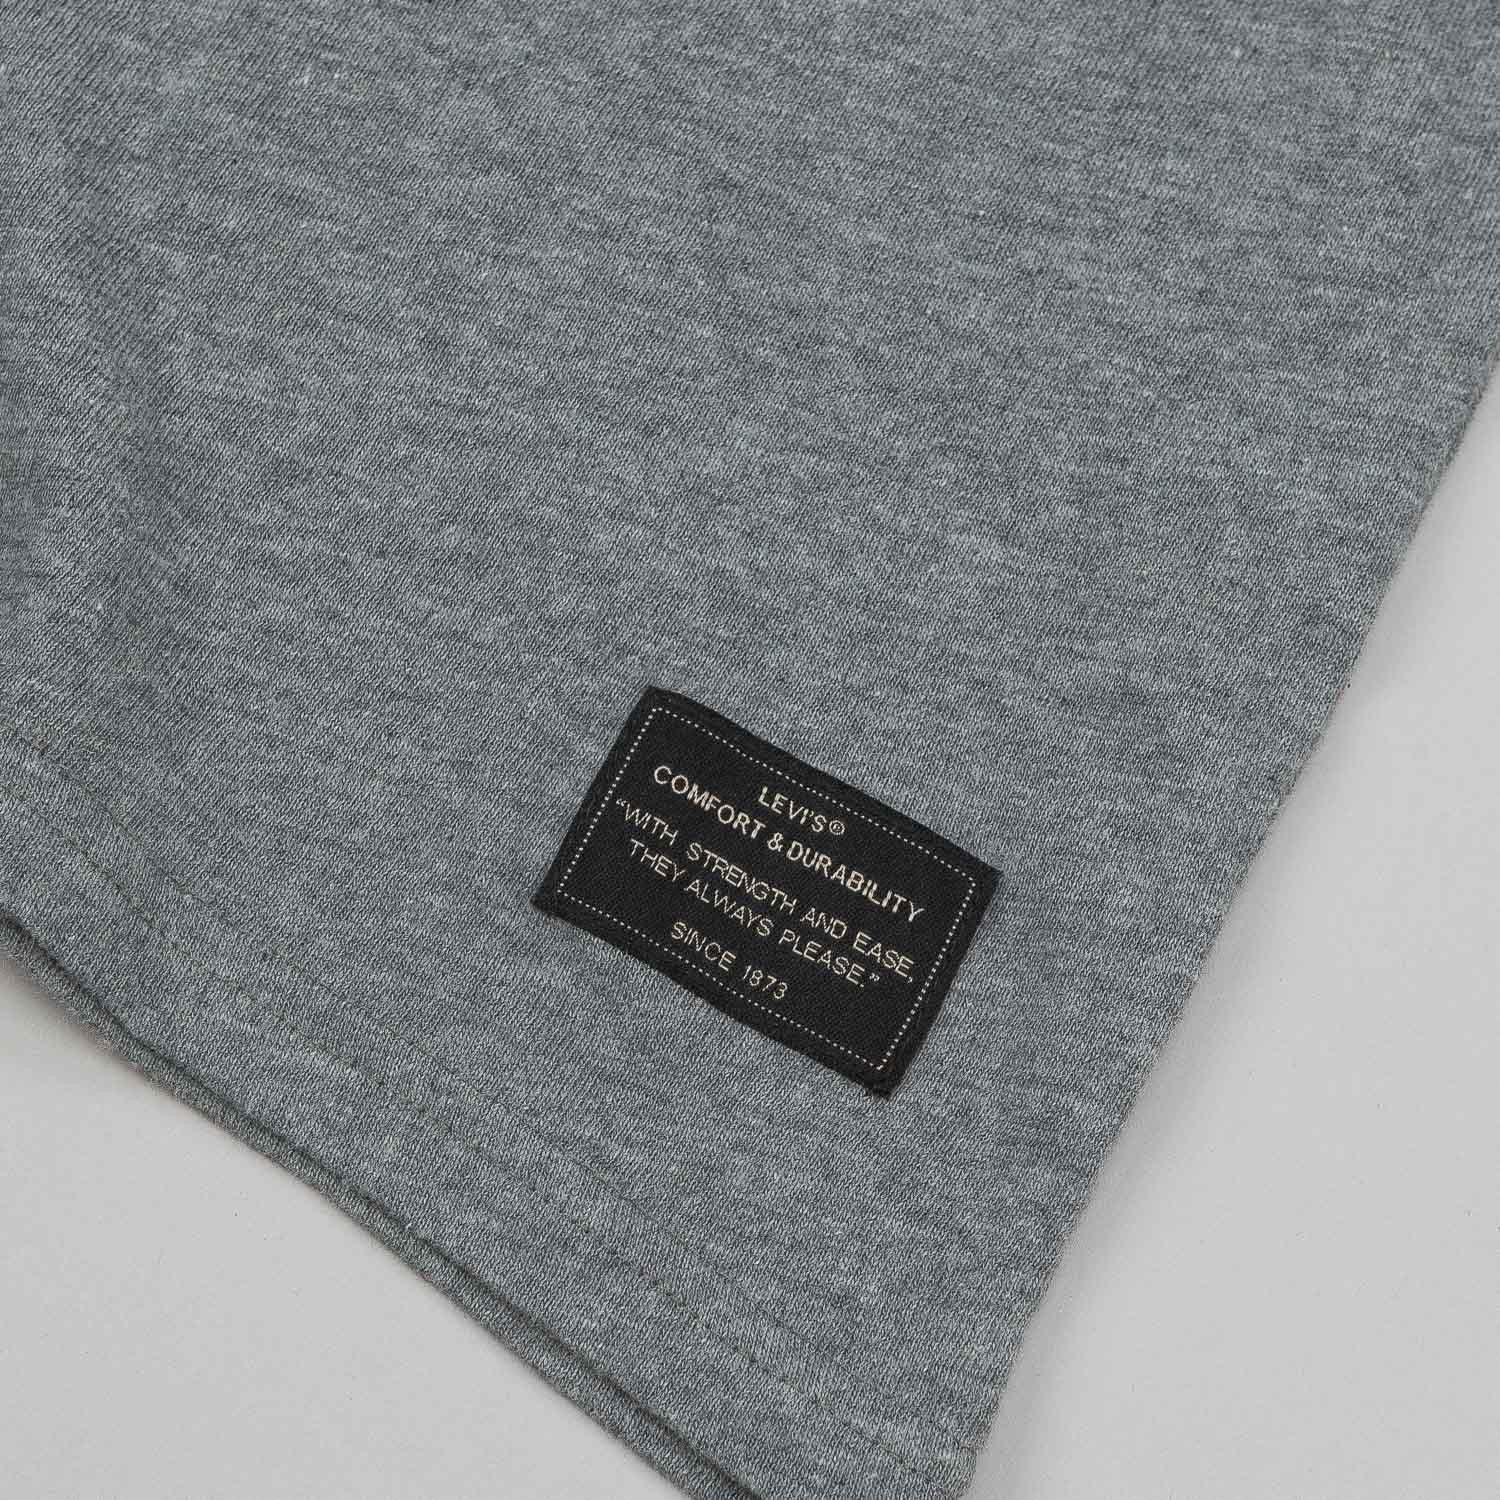 Levi's® Skate Pocket Short Sleeve T-Shirt - Lead Grey Heather